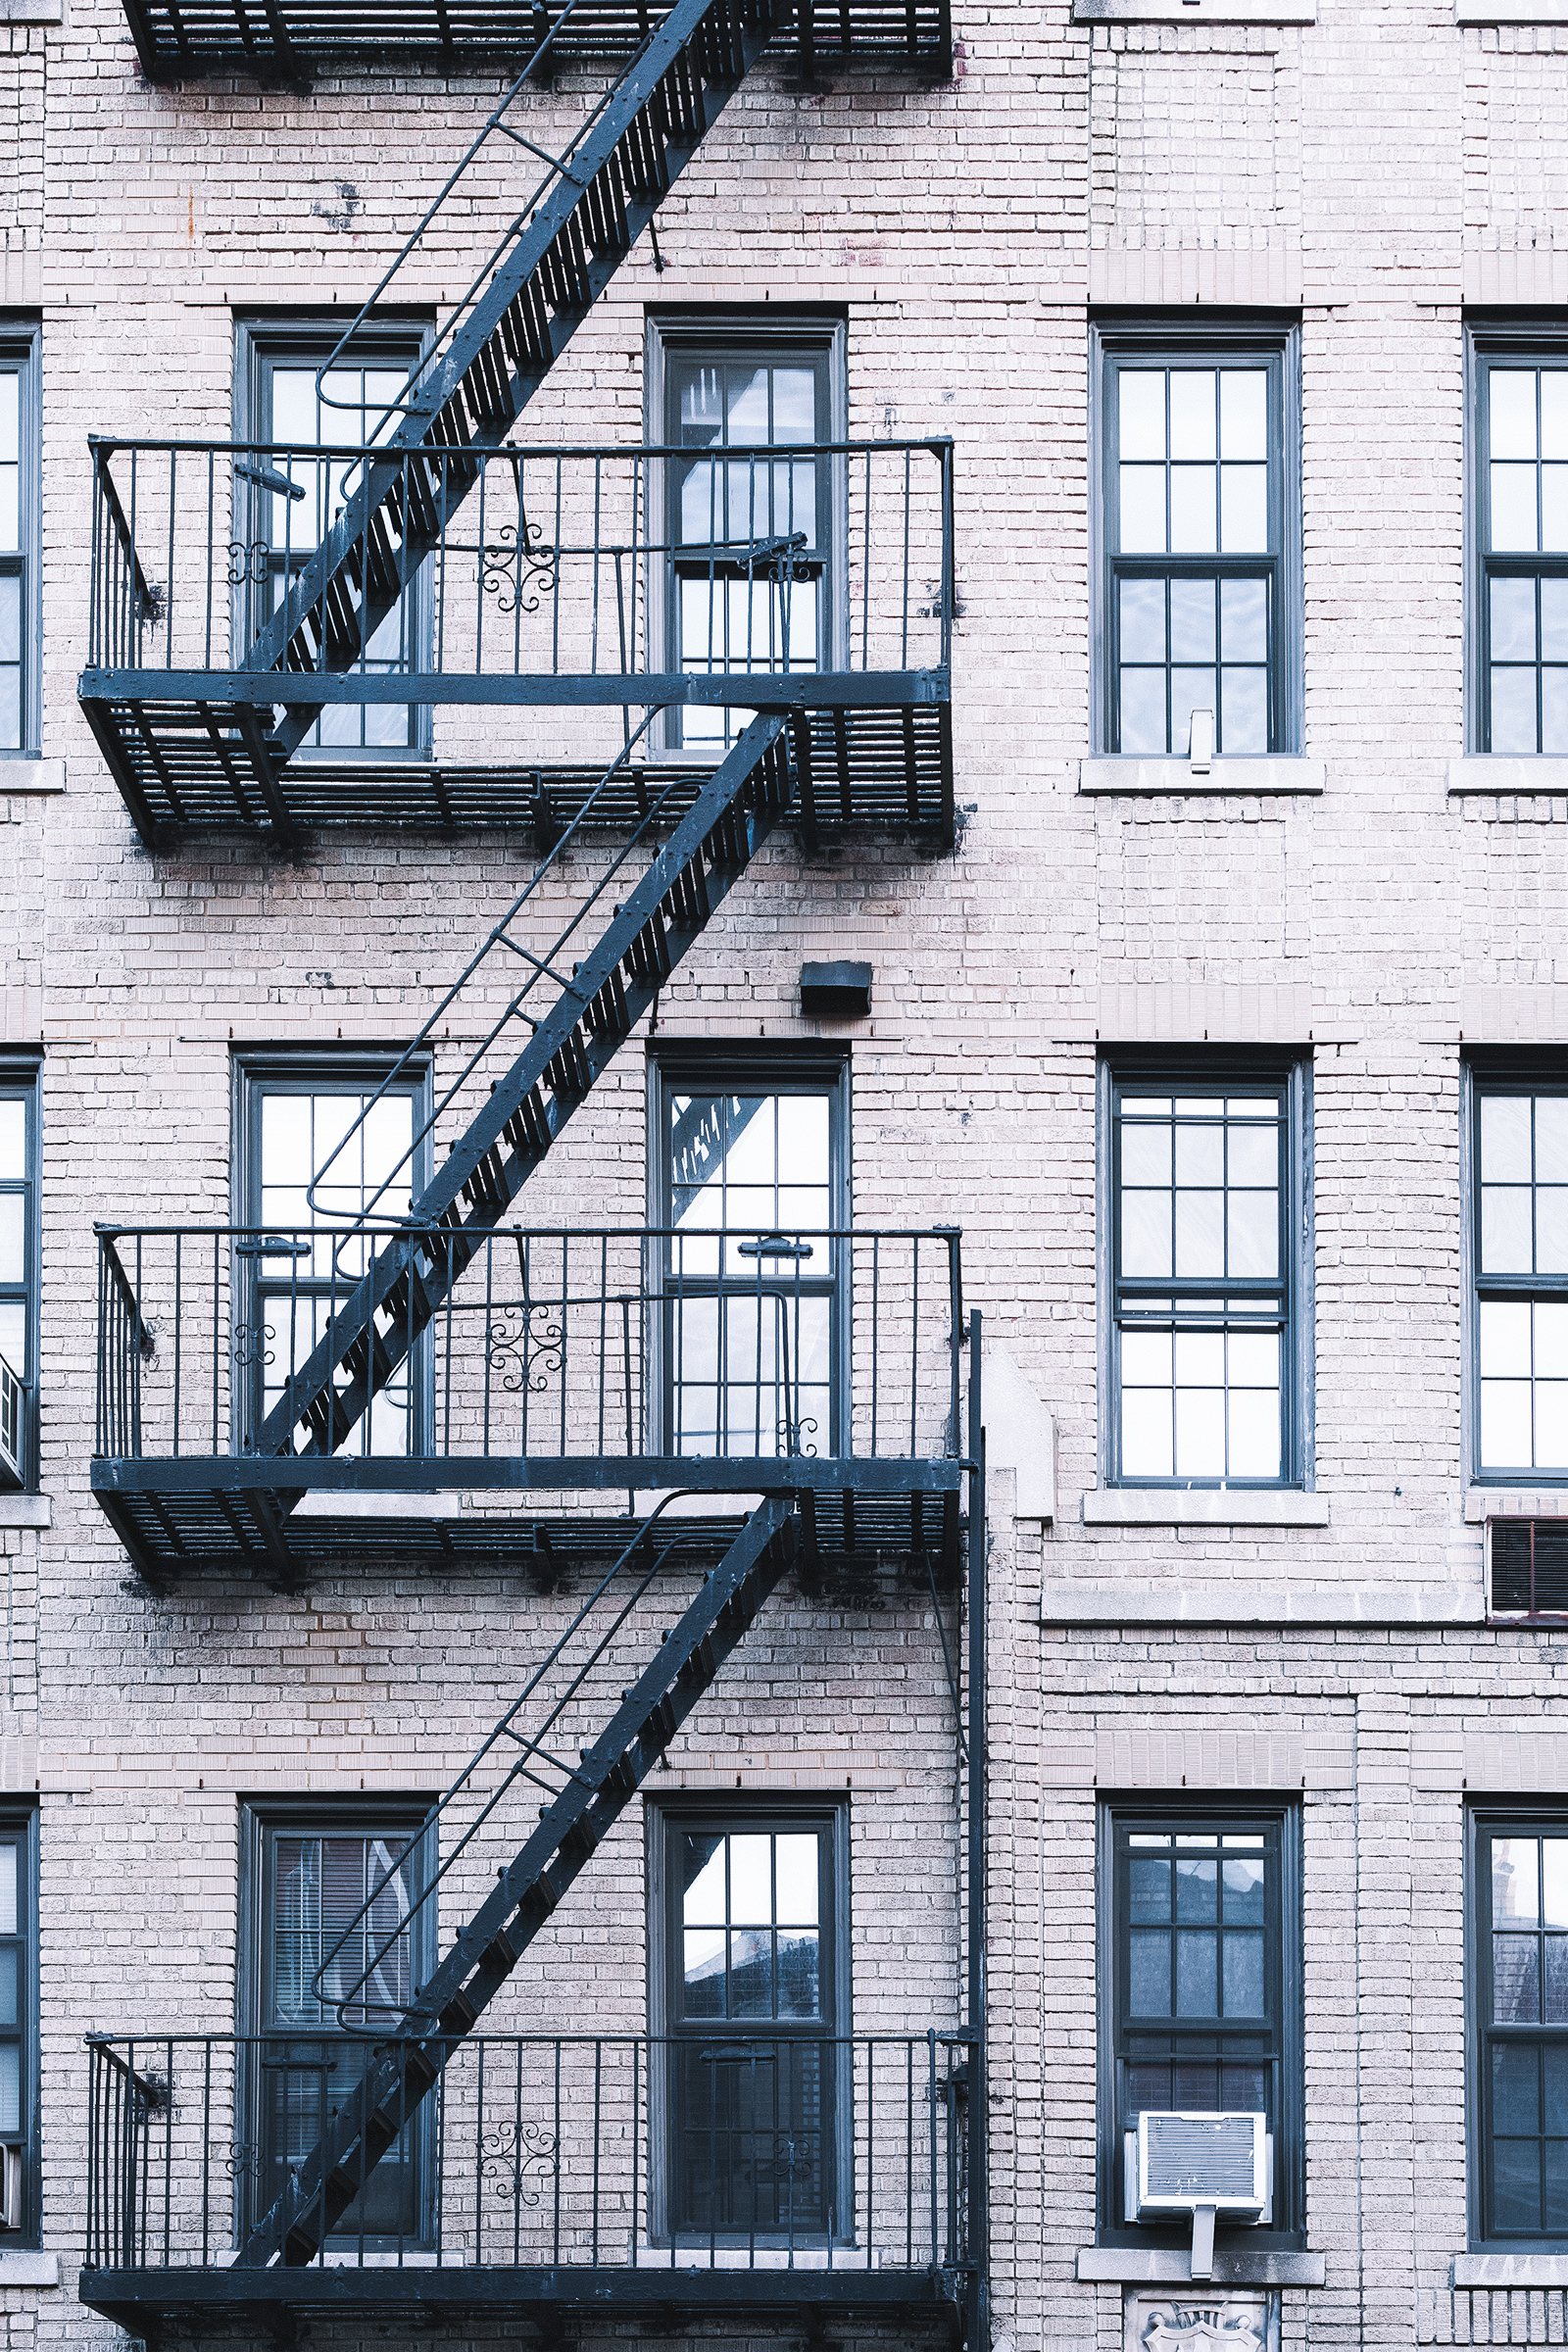 New York City Architecture / Staircase White / Travel Photography / Kelly Fiance Creative